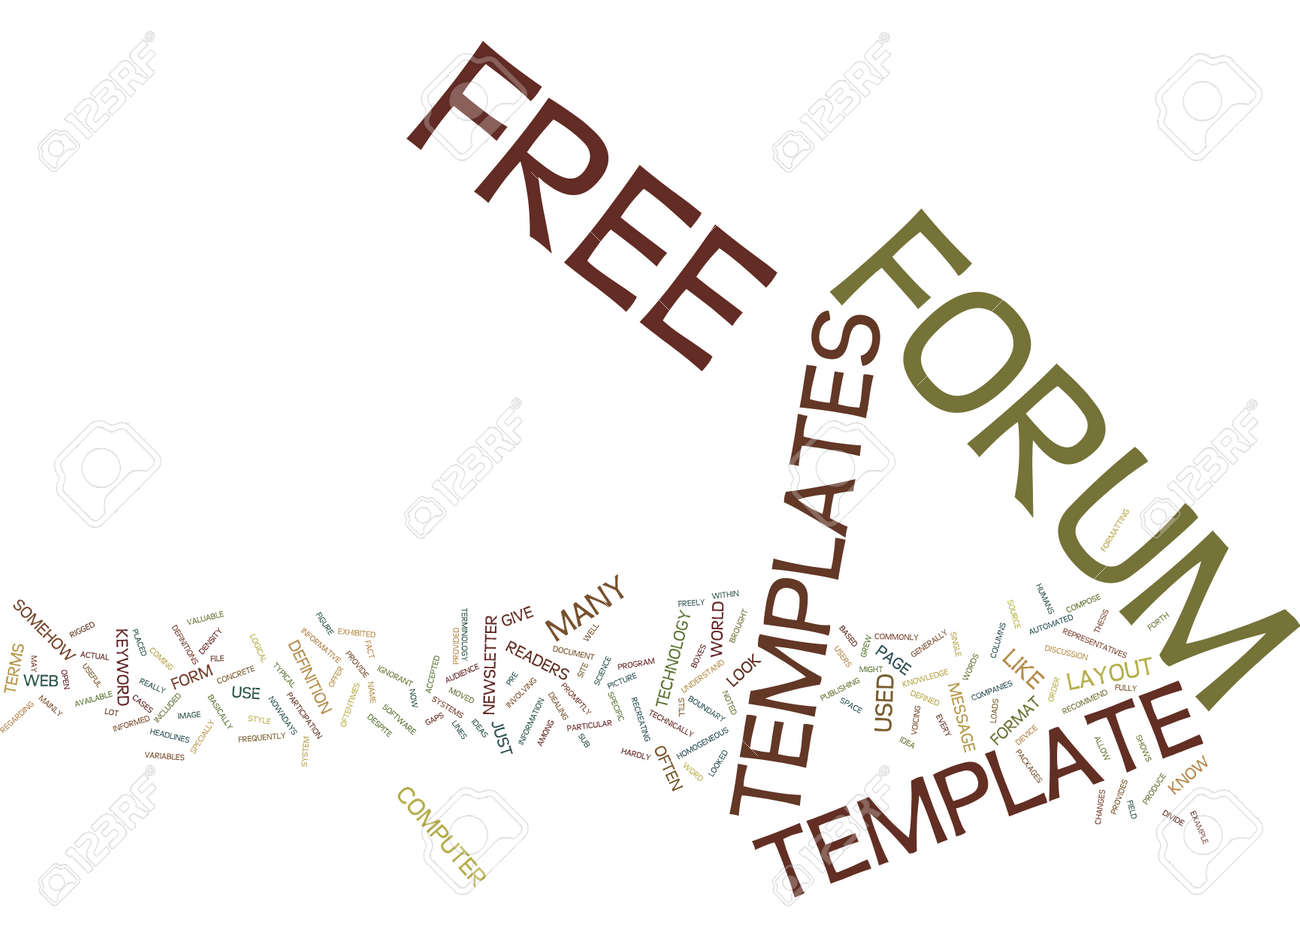 FREE FORUM TEMPLATES Text Background Word Cloud Concept